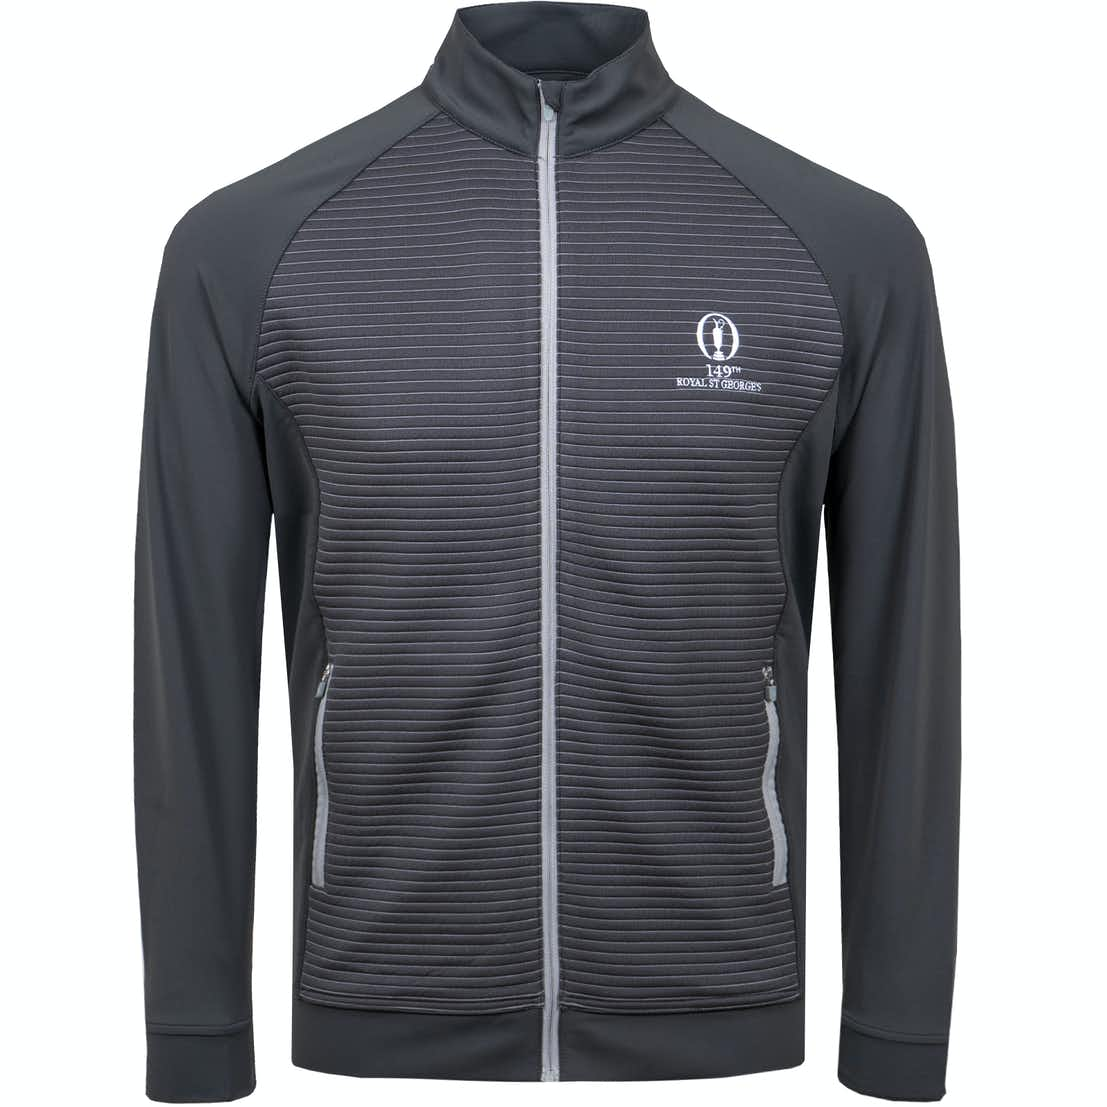 149th Royal St George's Full-Zip Sweater - Grey